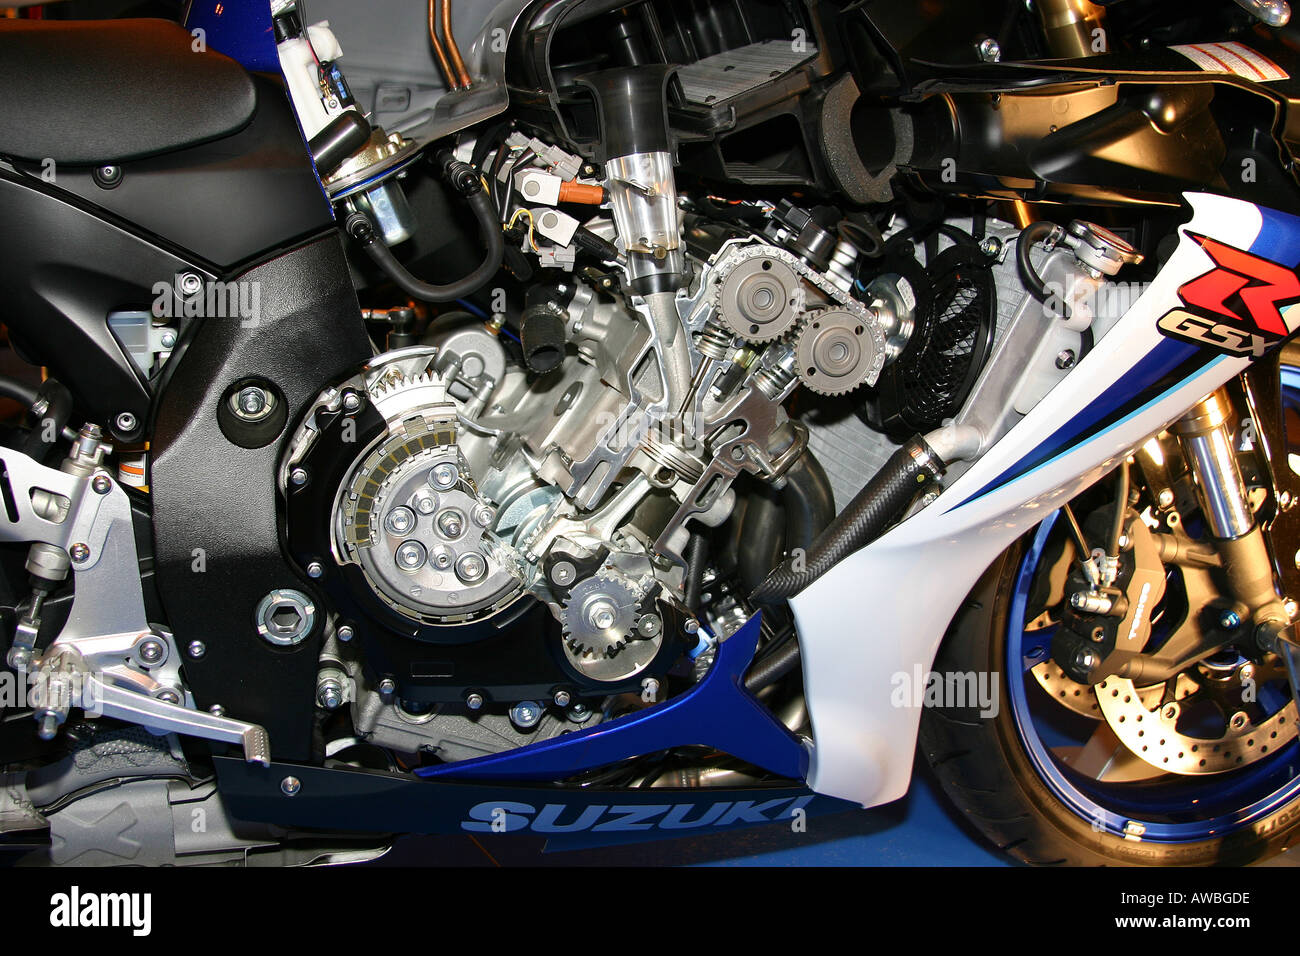 4 Stroke Engine Cut Away Diagram Best Electrical Circuit Wiring Motorcycle Cycle Inside Two Cylinder